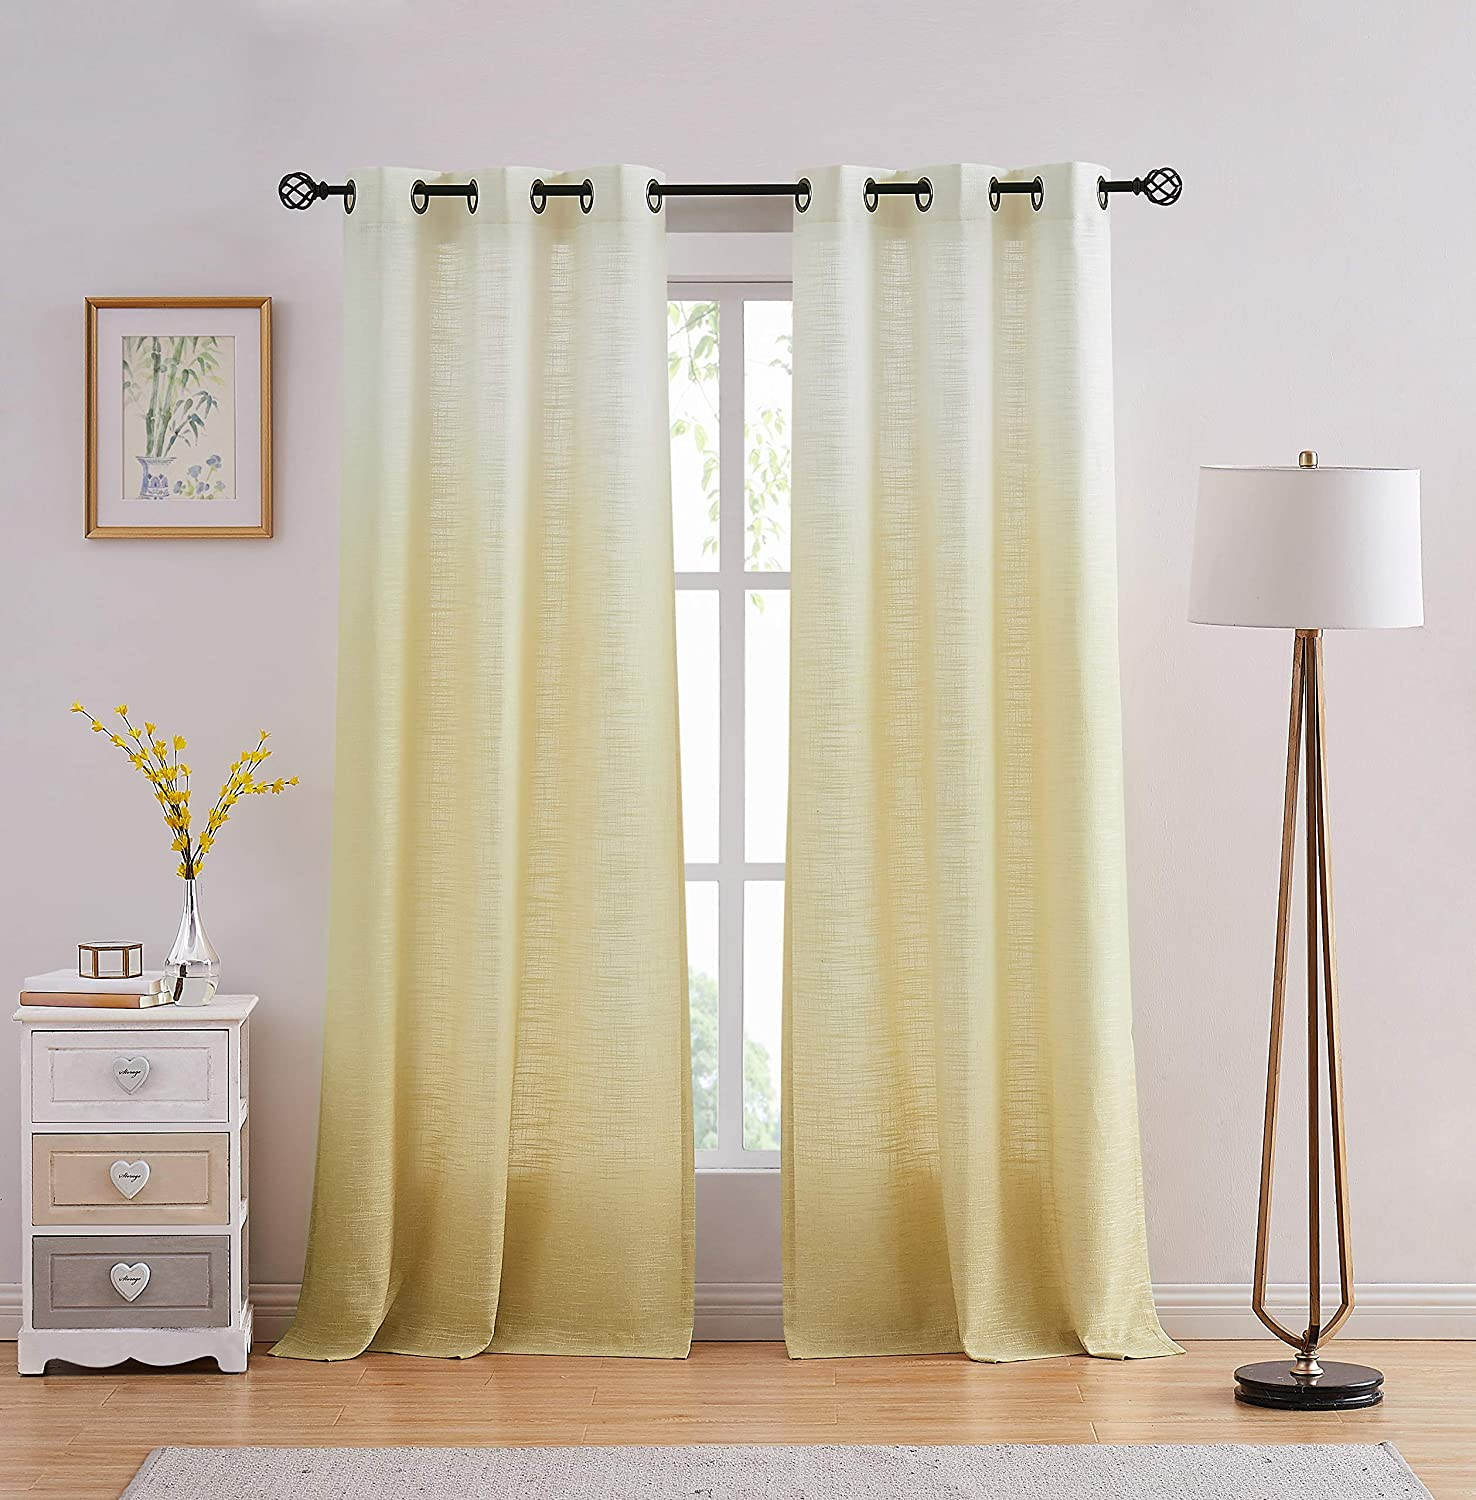 """Central Park Ombre Window Curtain Panel Linen Gradient Print on Rayon Blend Fabric Drapery Treatments for Living Room/Bedroom, Cream White to Yellow/Light Gold, 40"""" x 84"""", Set of 2"""